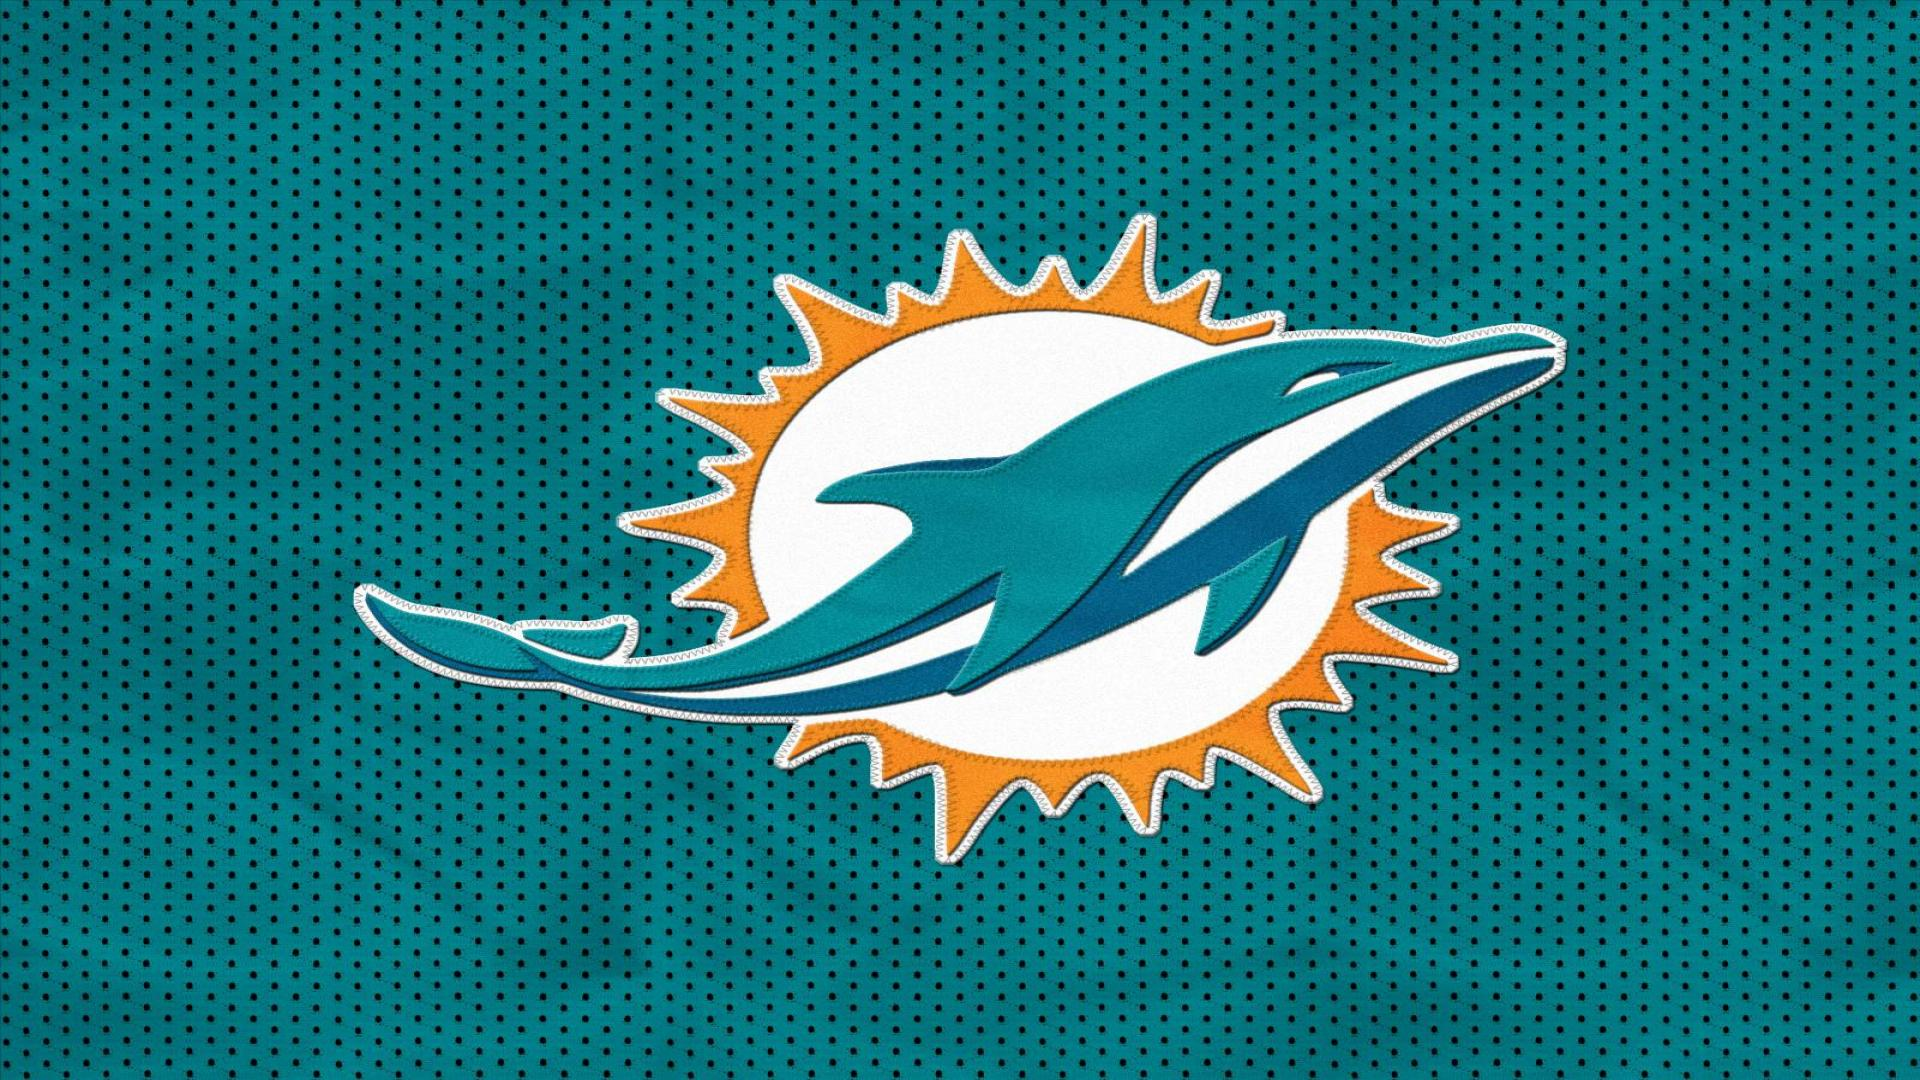 MIAMI DOLPHINS nfl football rq wallpaper background 1920x1080